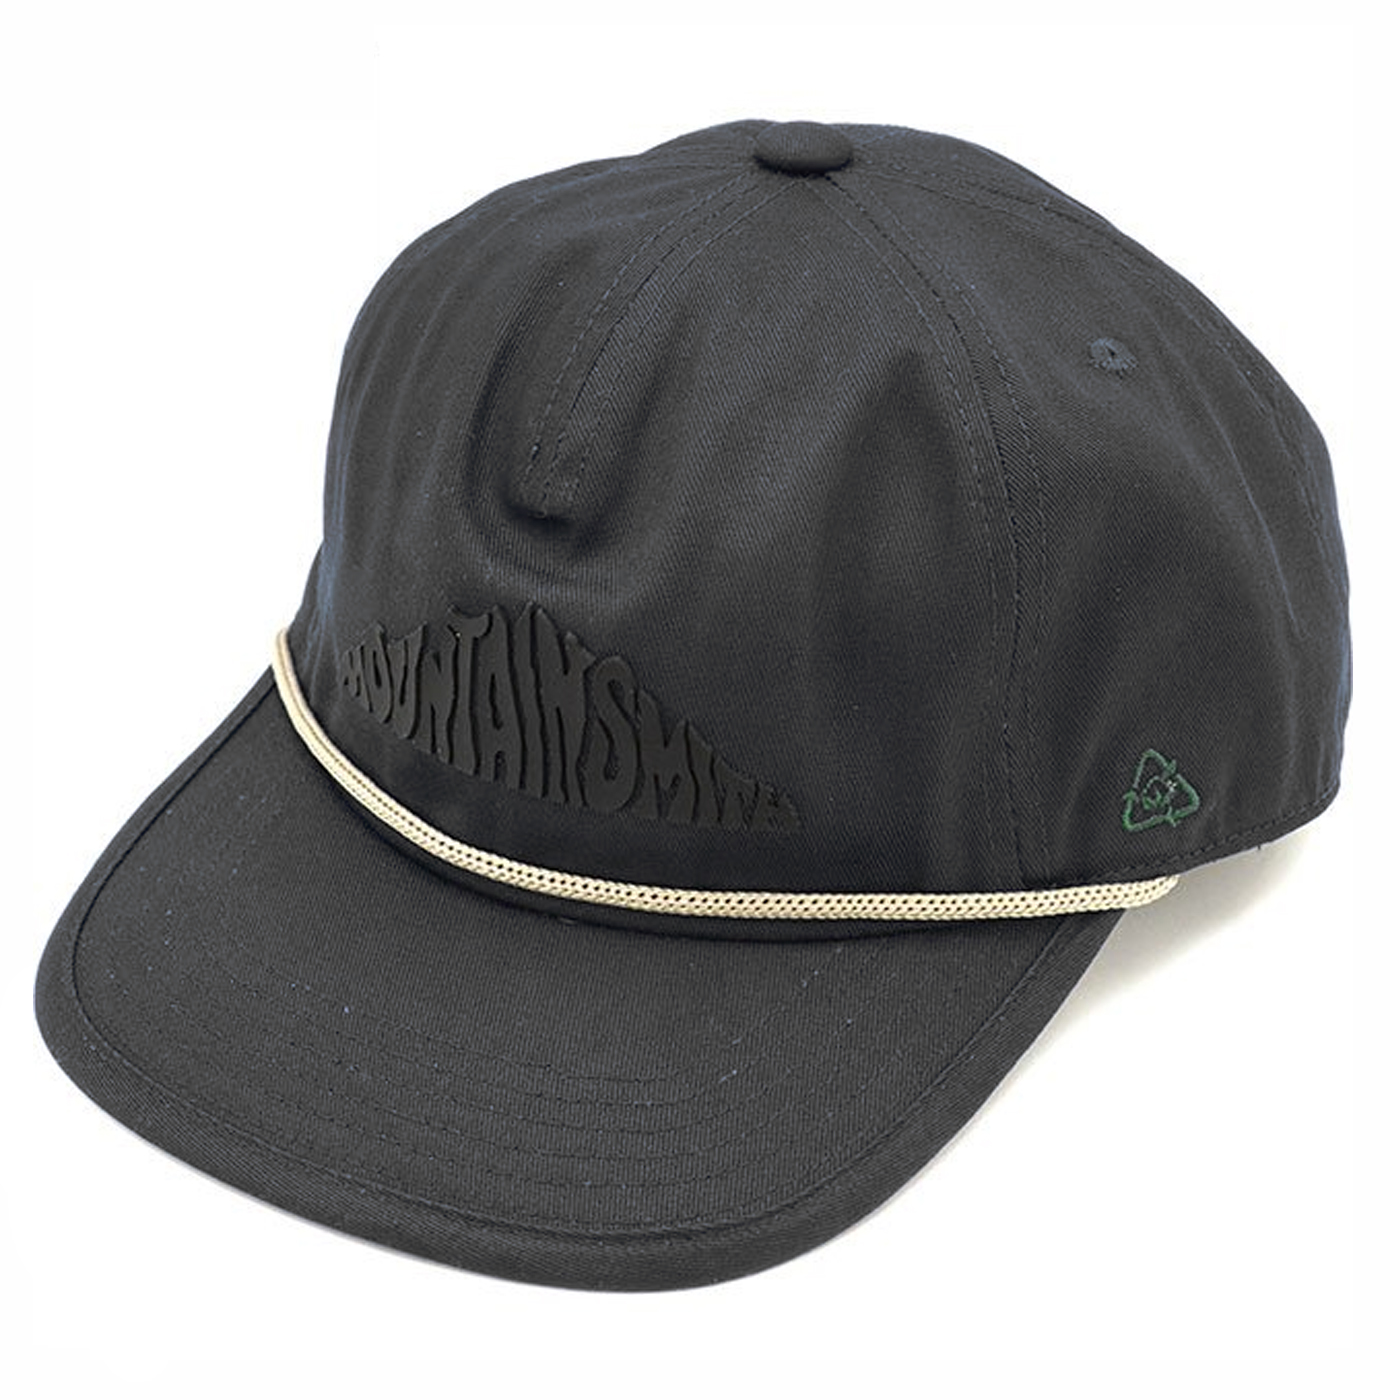 product: MS RECYCLED COTTON Golden CAP / color: BLACK 1